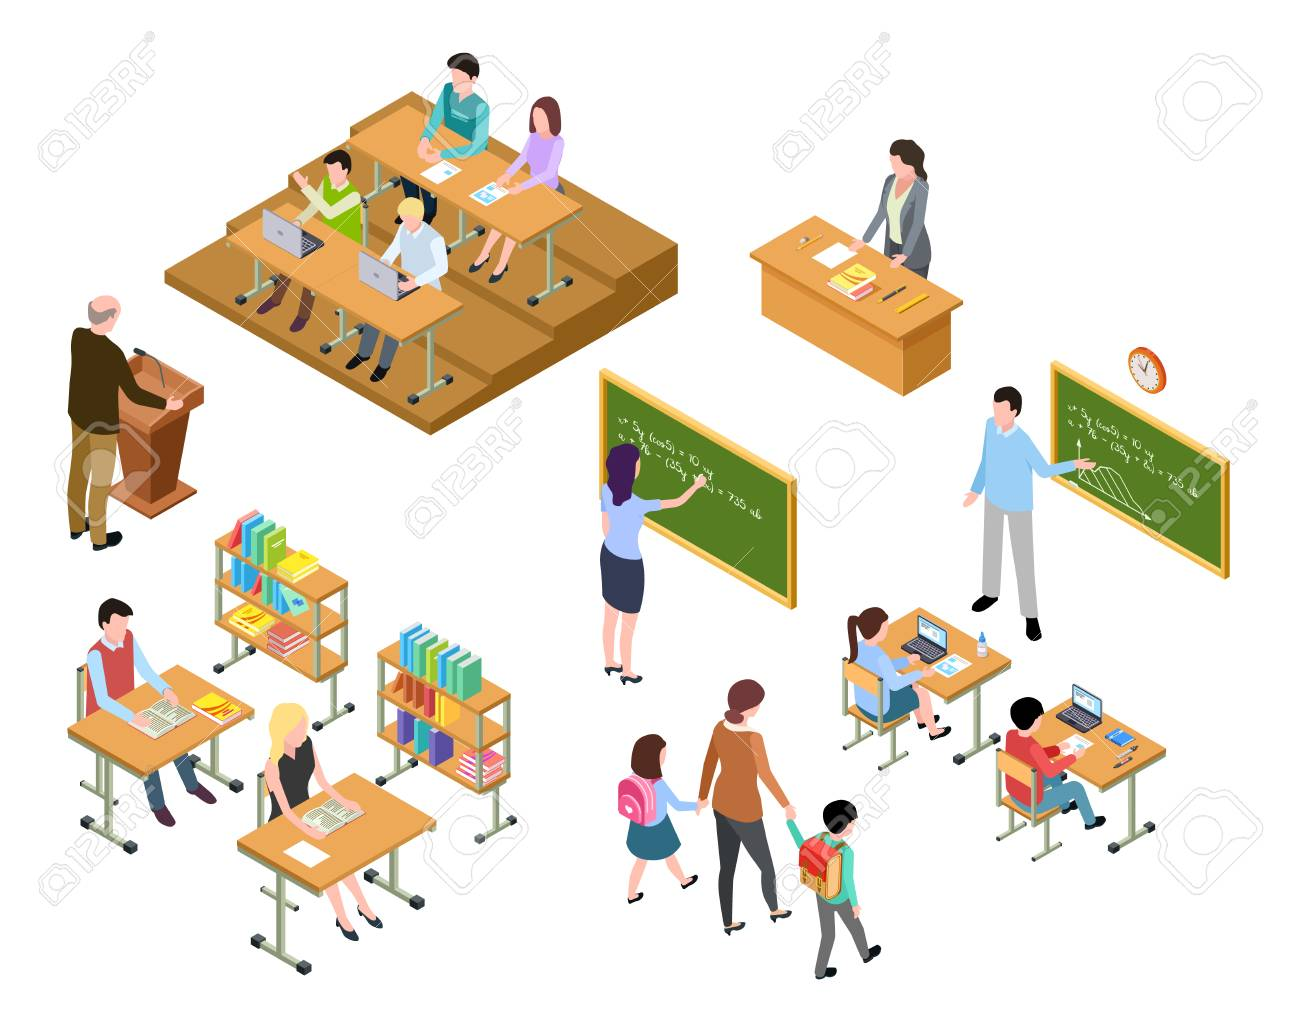 Isometric school. Children and teacher in classroom and library. People in uniform and students. School education vector 3d concept. Library and classroom, education school class illustration - 111588988